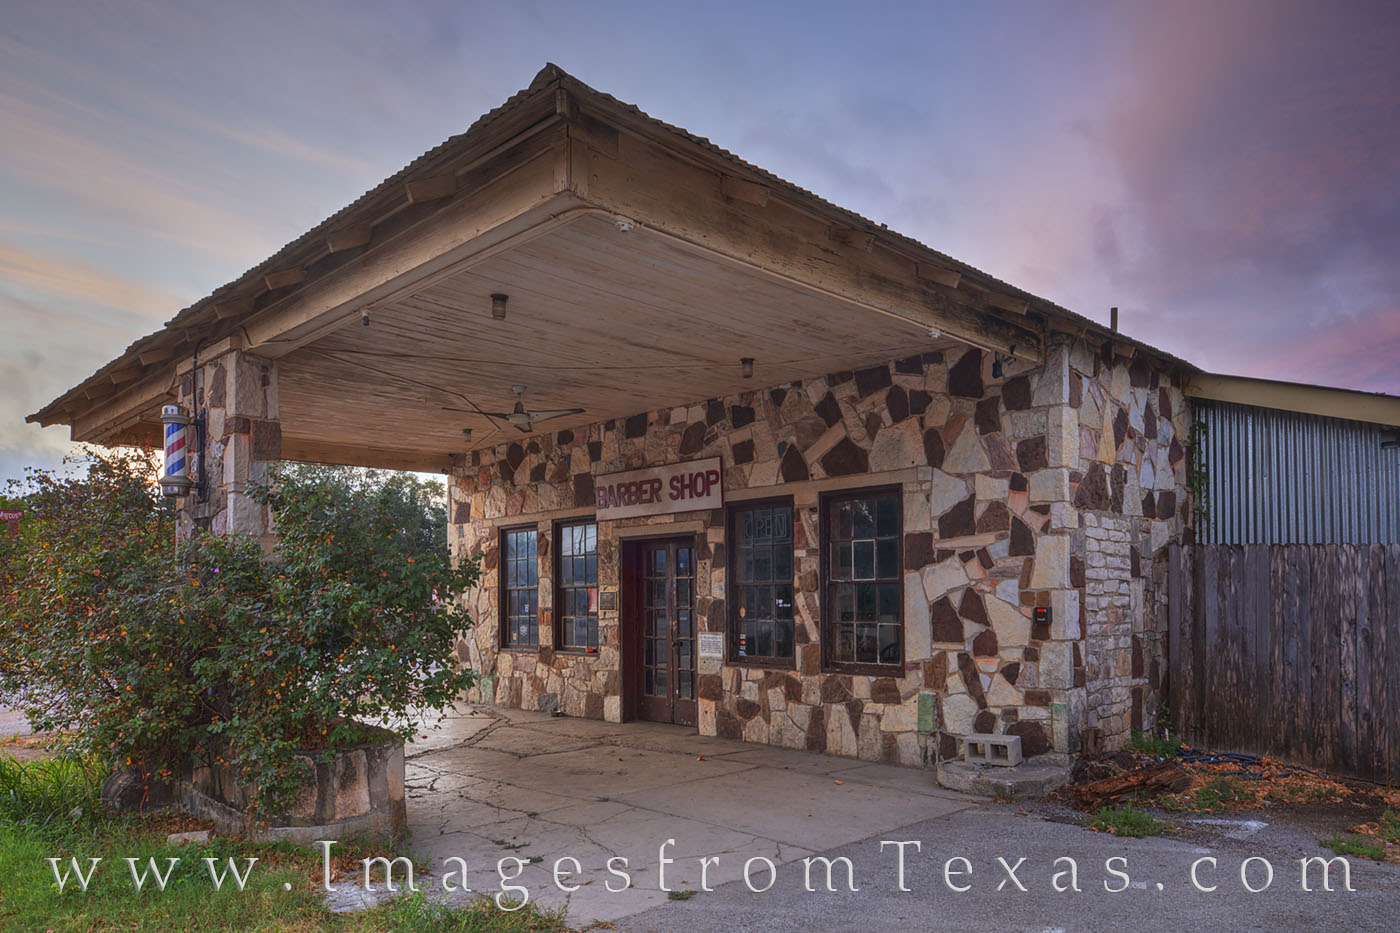 dripping springs, barber shop, mercer street, bar, photo